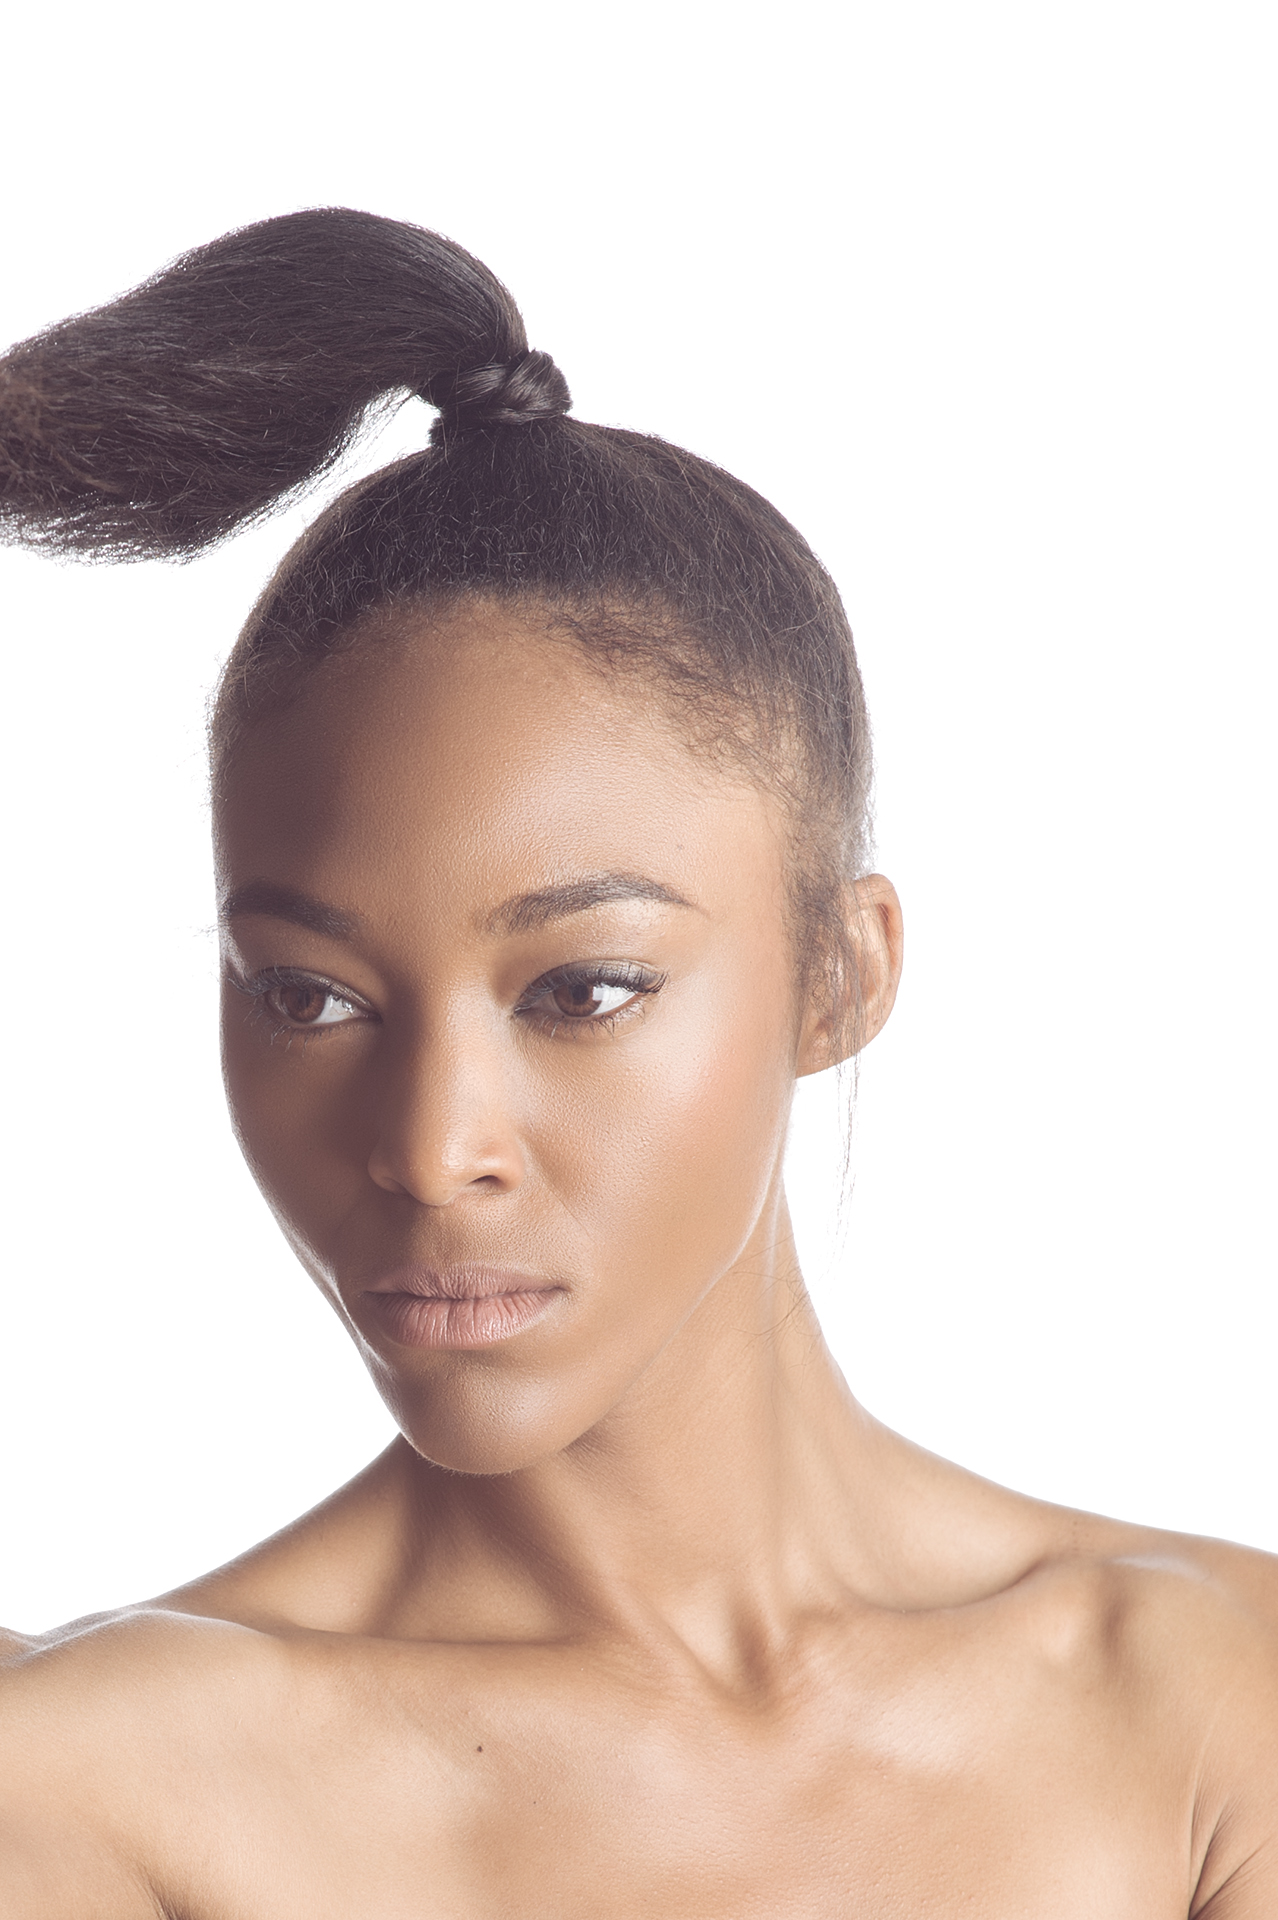 High key headshot of model Ty'Kea Trichelle